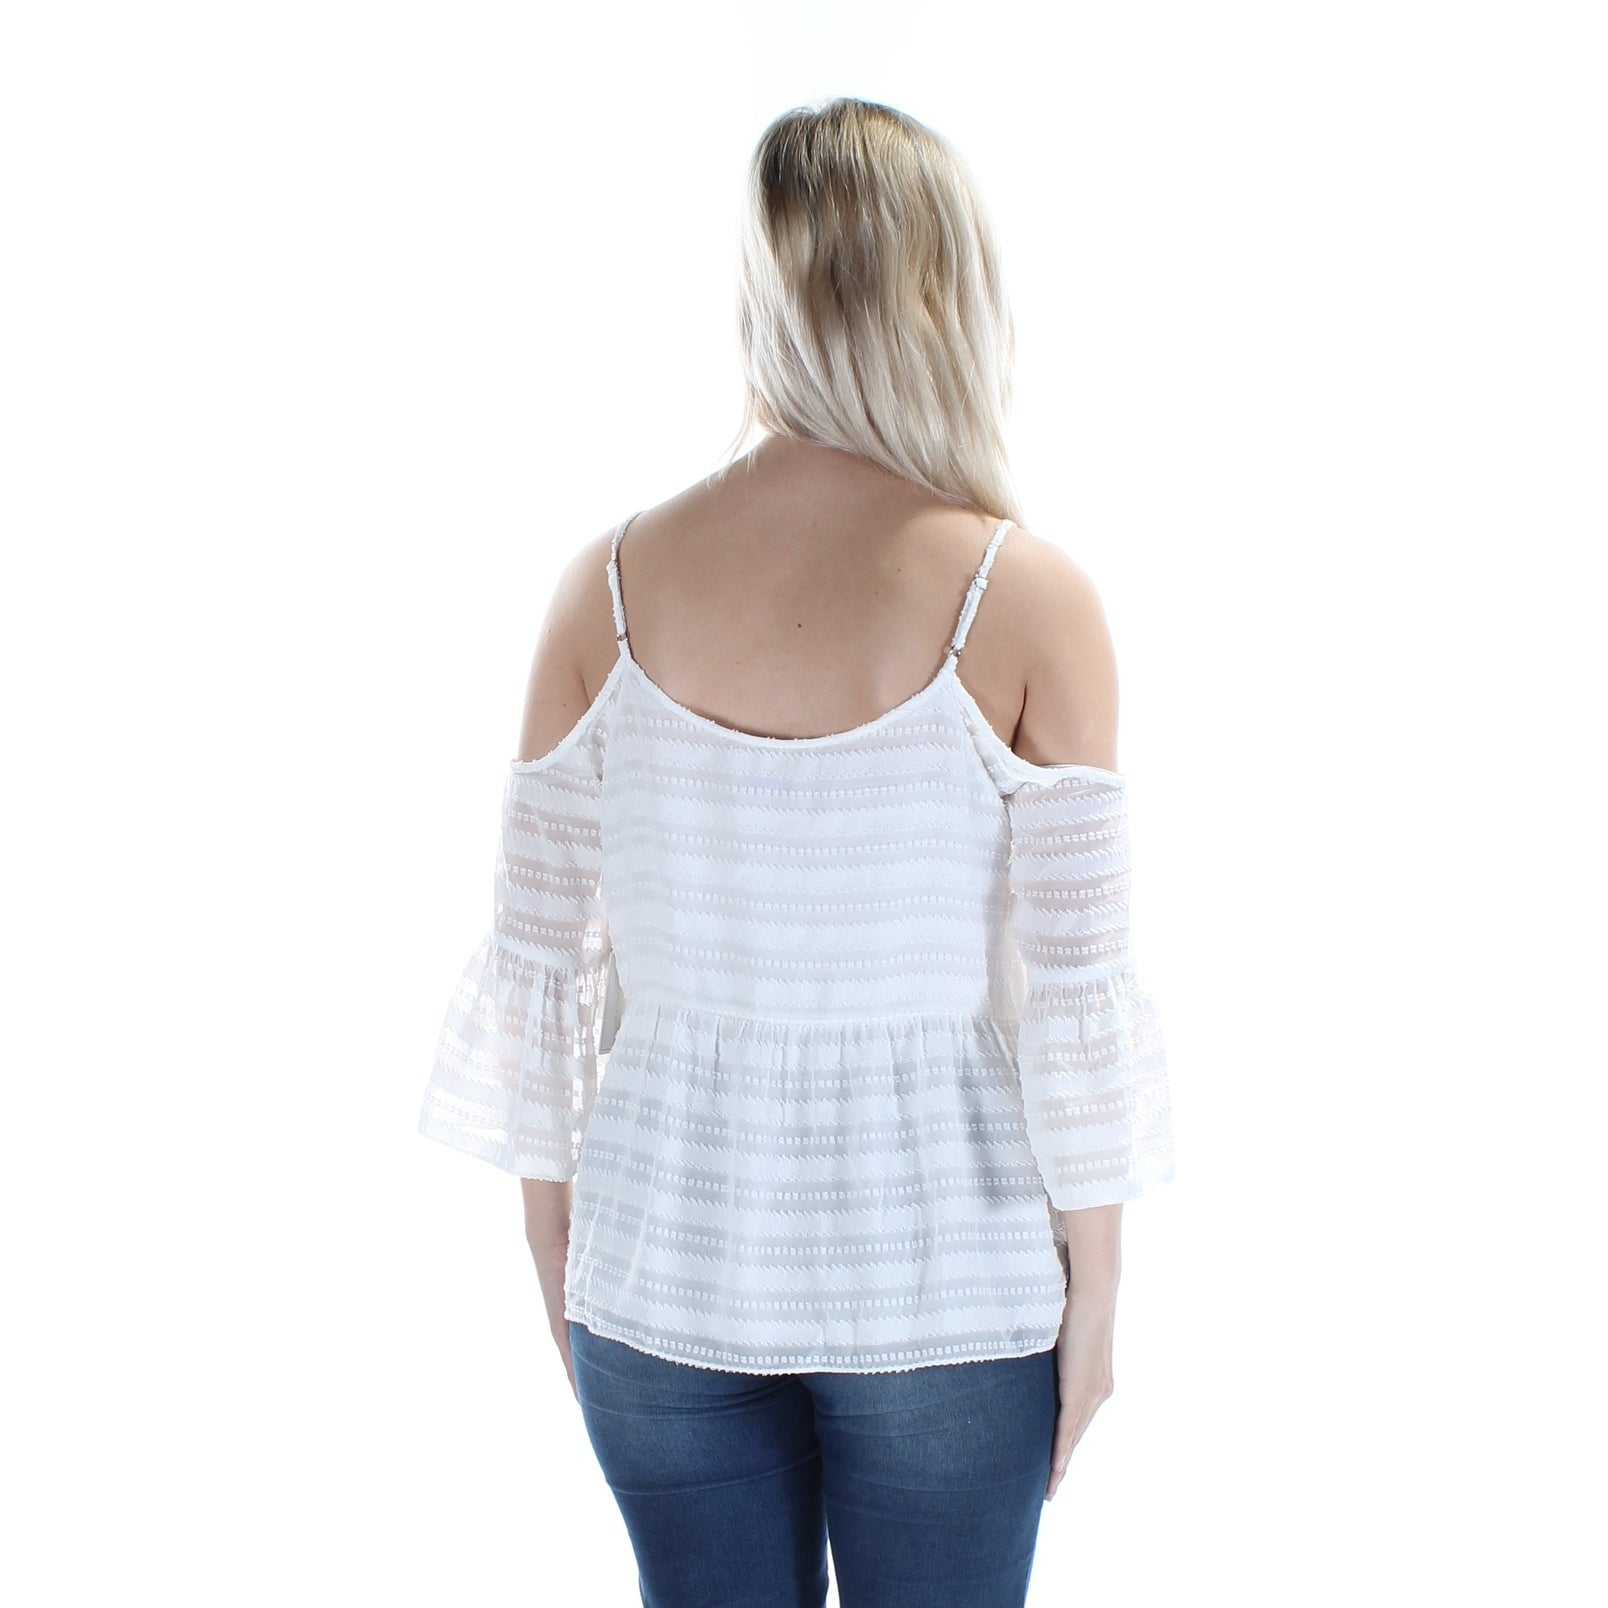 2fad8991e7771 STATE Womens Ivory Textured Striped Spaghetti Strap Off Shoulder Top Size   S - On Sale - Free Shipping On Orders Over  45 - Overstock - 21832849